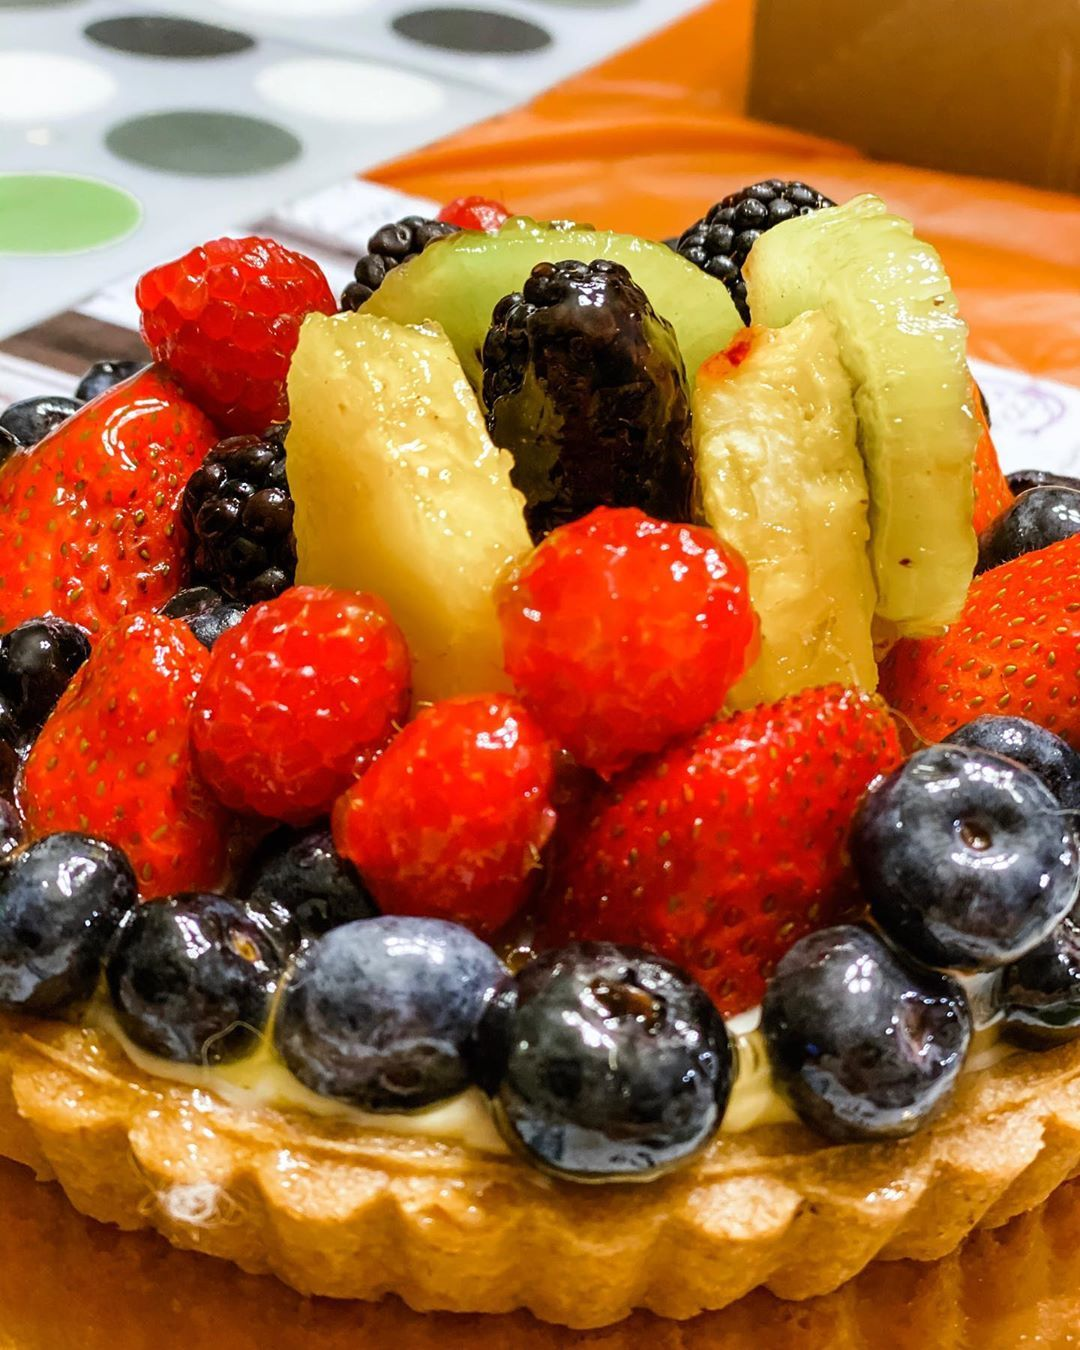 Can we swoon over this @wholefoods fruit tart? Everything from this tart is to die for, from the crust, the filling as well as the fresh fruits! It has the right amount of sweetness, minimum glaze over their fruits and so Instagram worthy!!